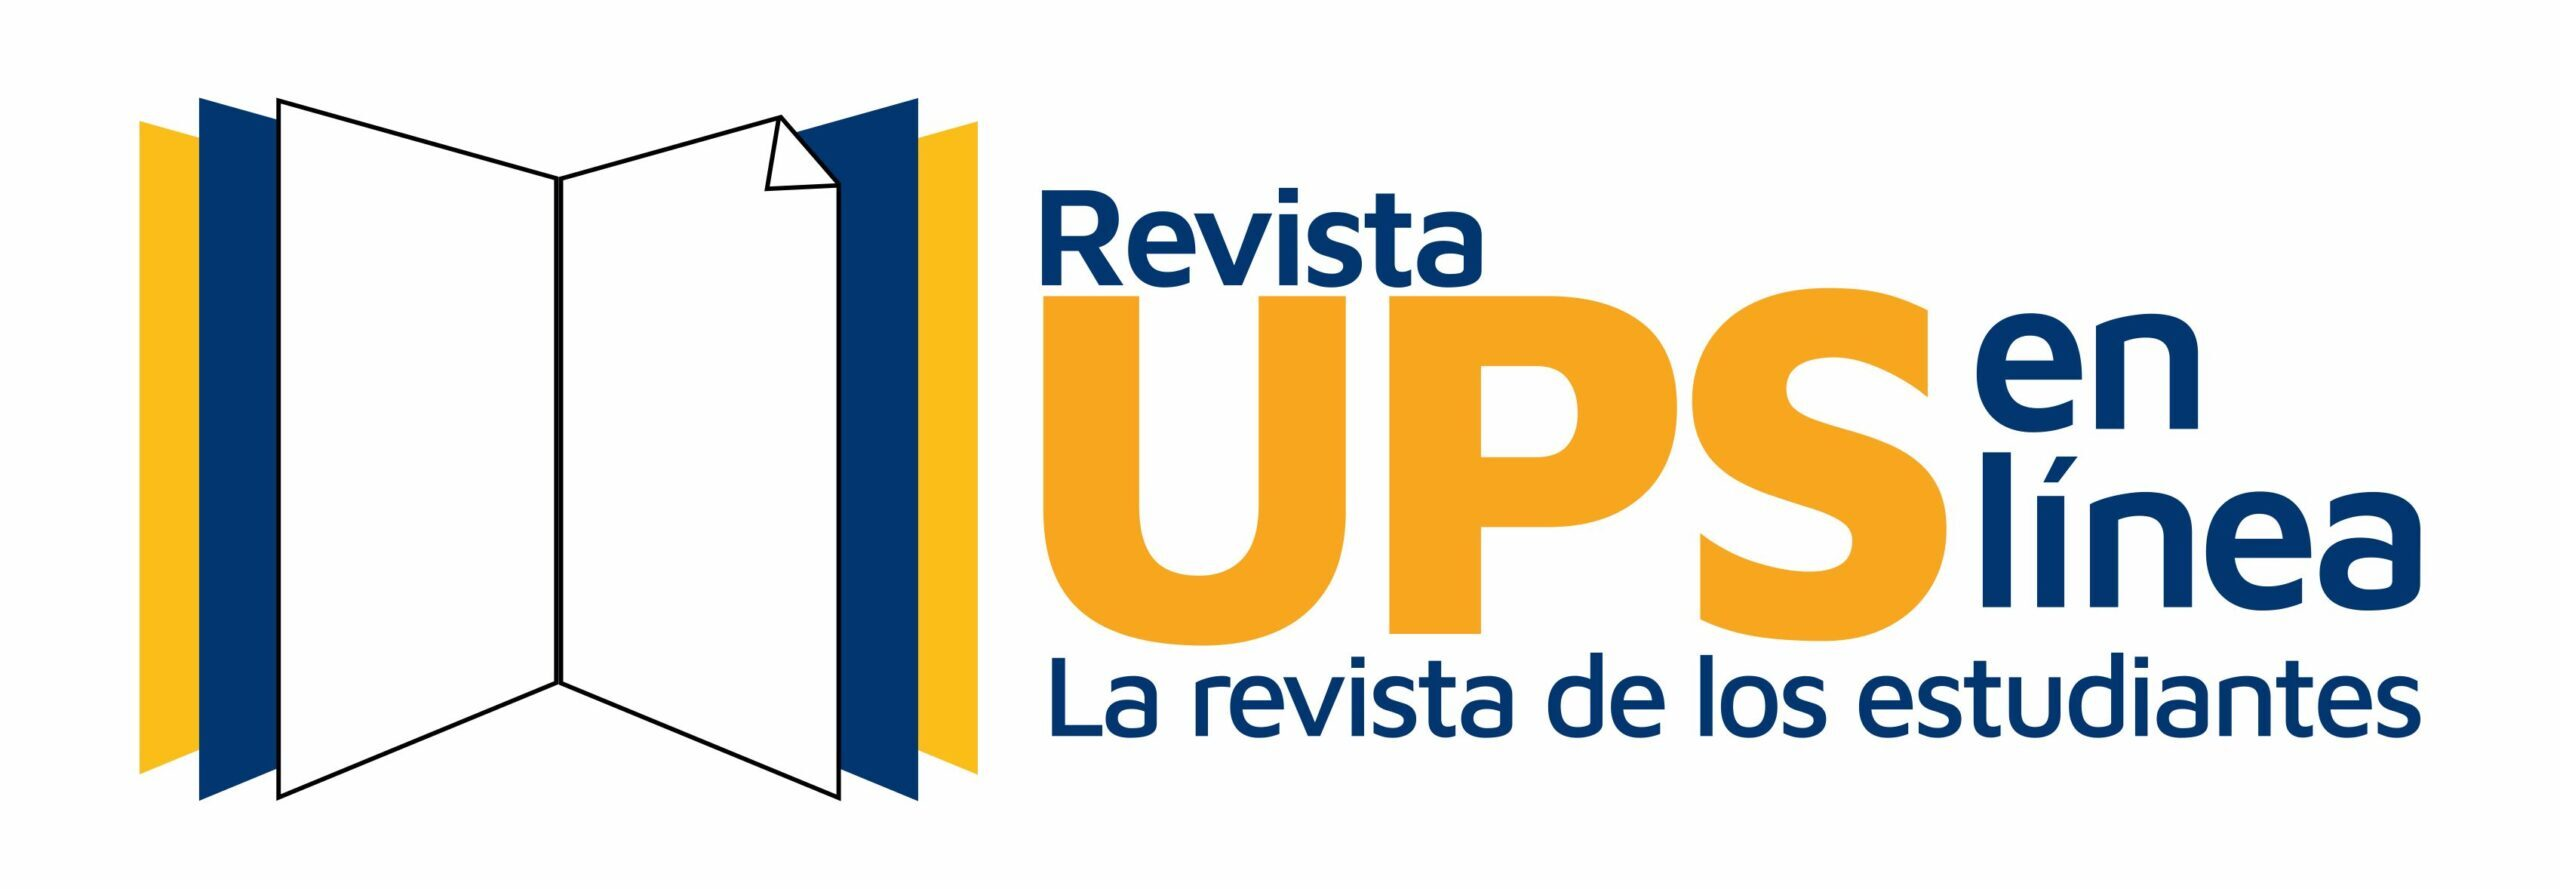 Revista Digital UPSenlinea